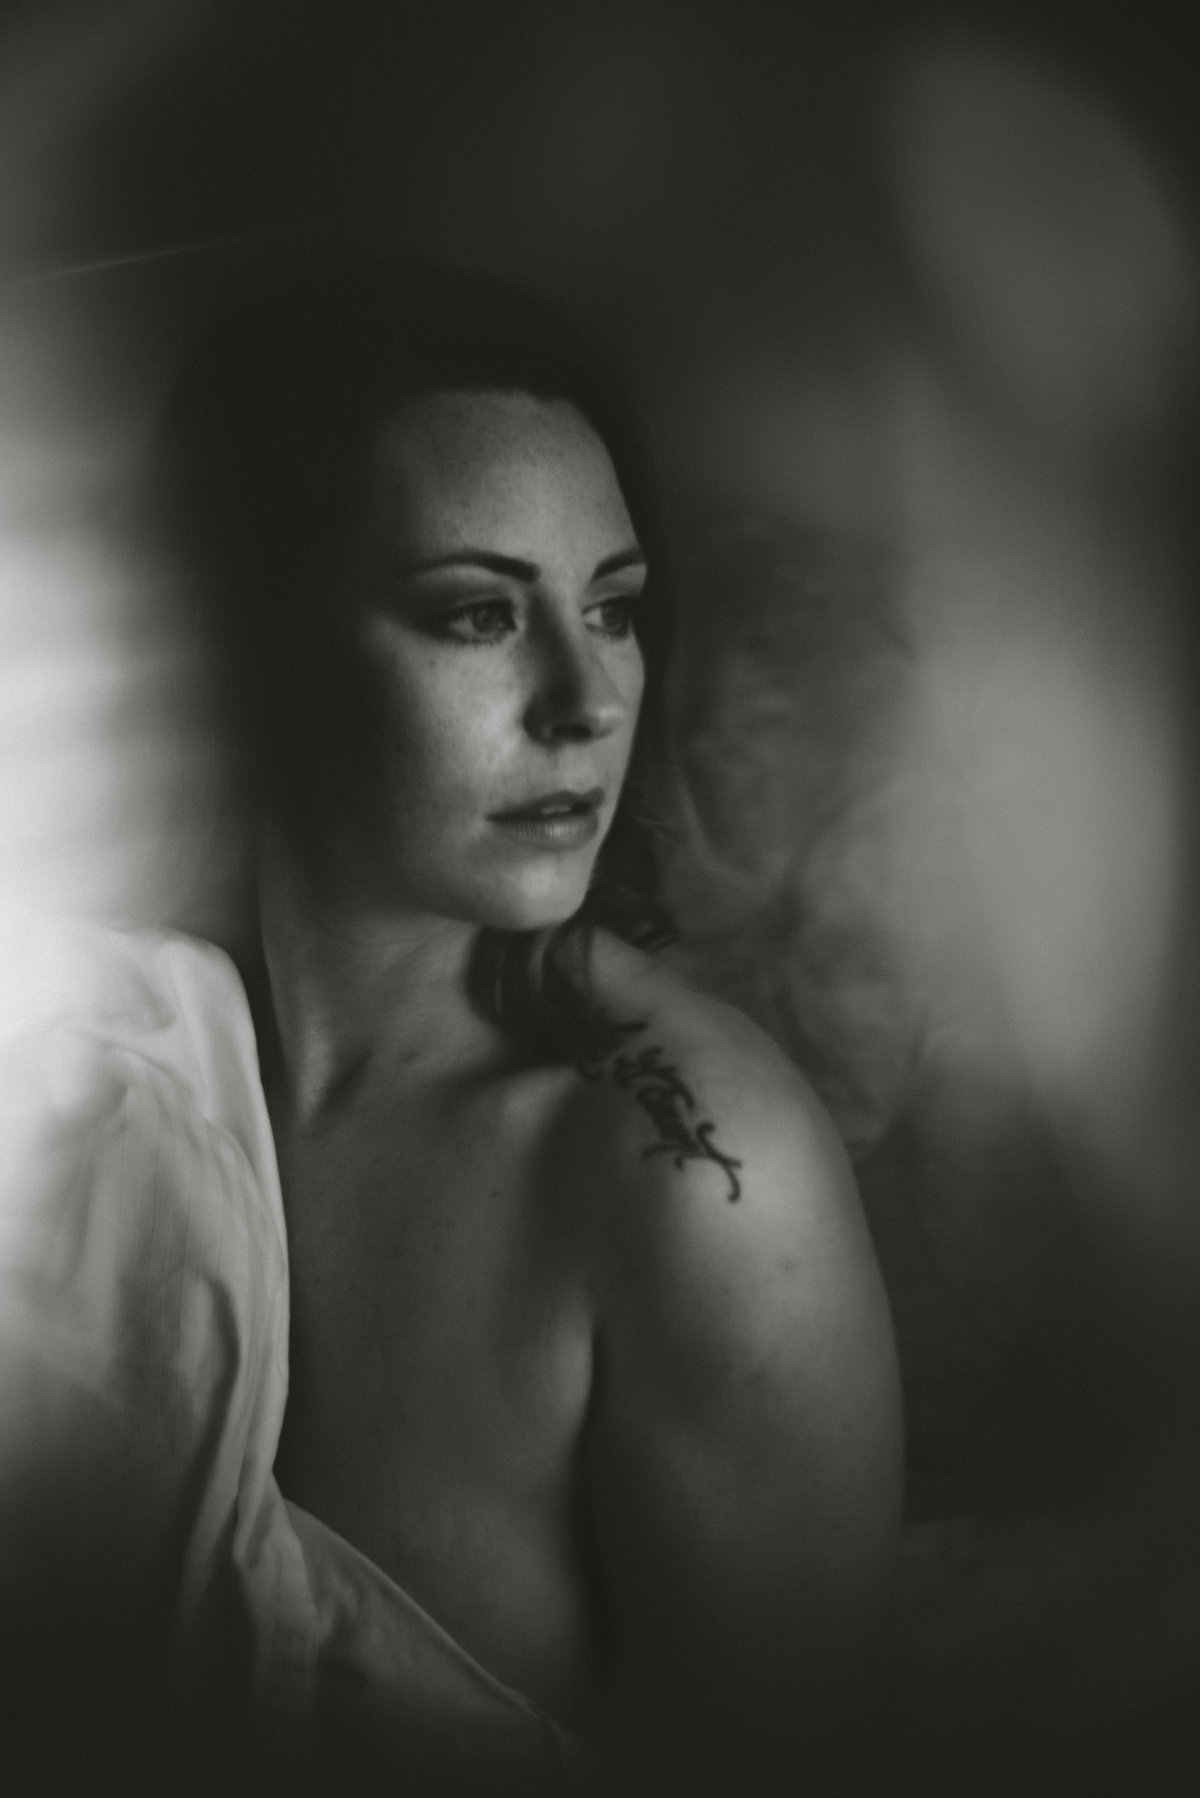 erika-gayle-photography-regina-boudoir-intimate-portrait-photographer-33